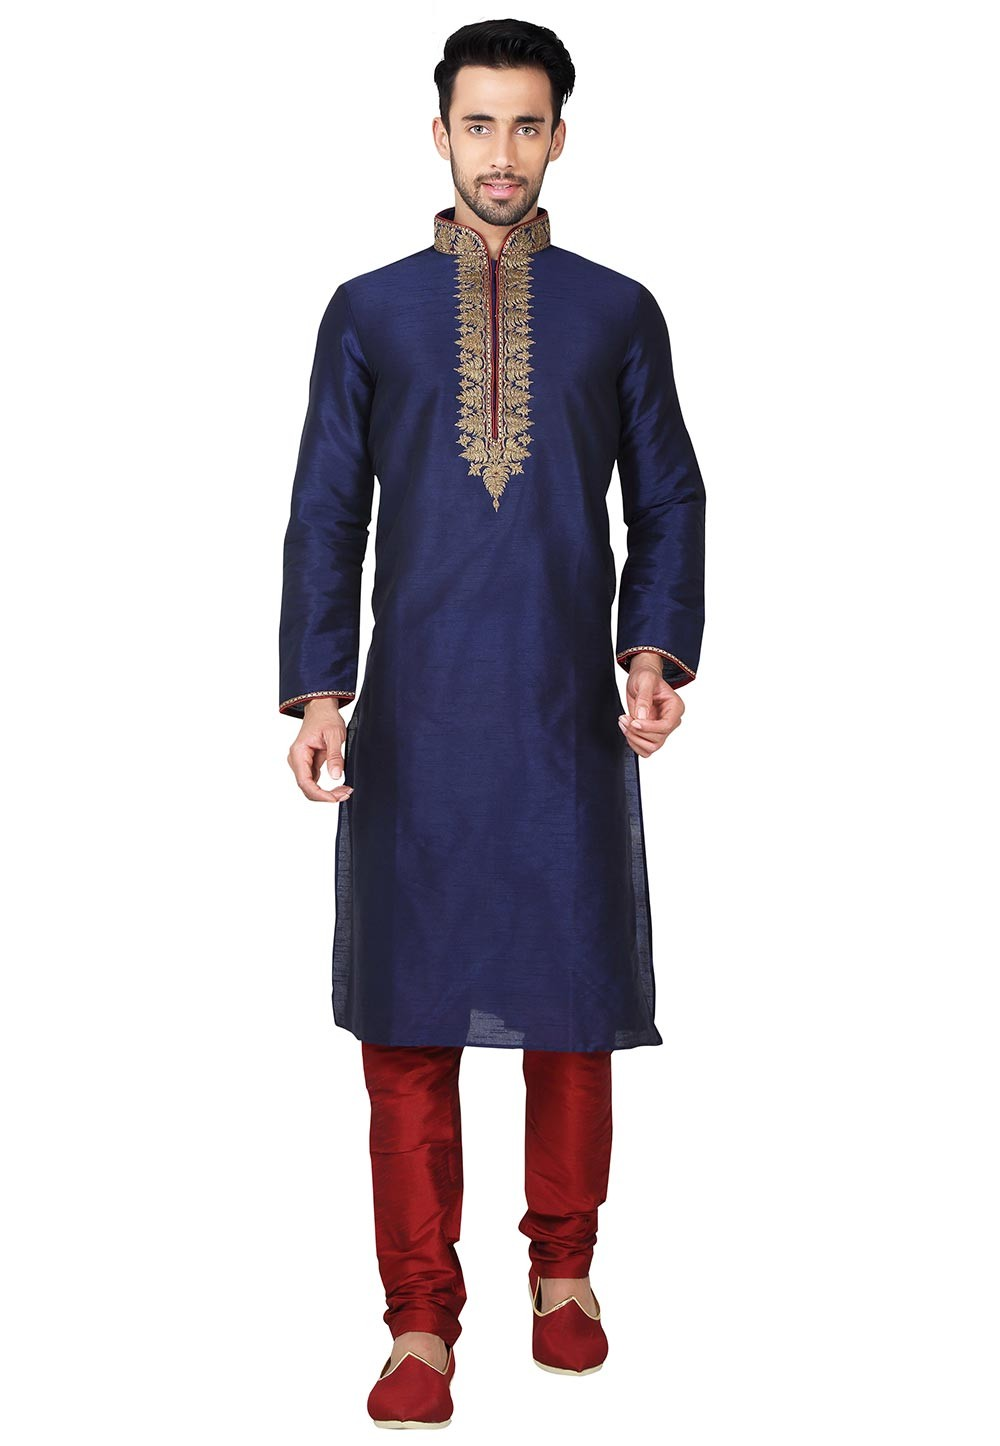 Exquisite Blue Color With Embroidery Work Readymade Kurta Pajama.